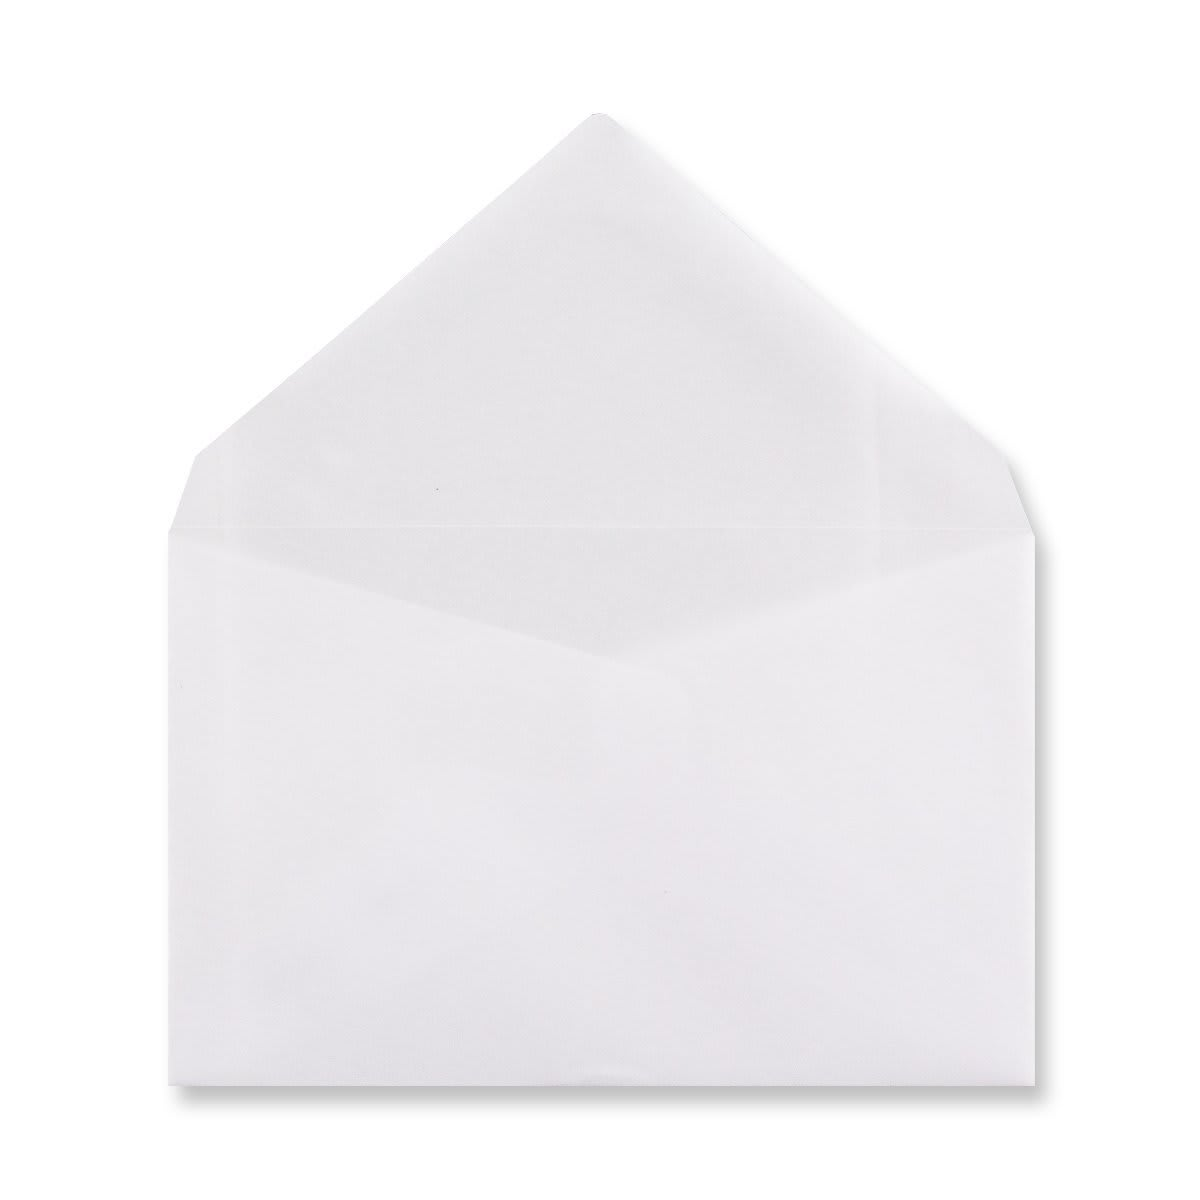 62 x 98MM WHITE TRANSLUCENT ENVELOPES